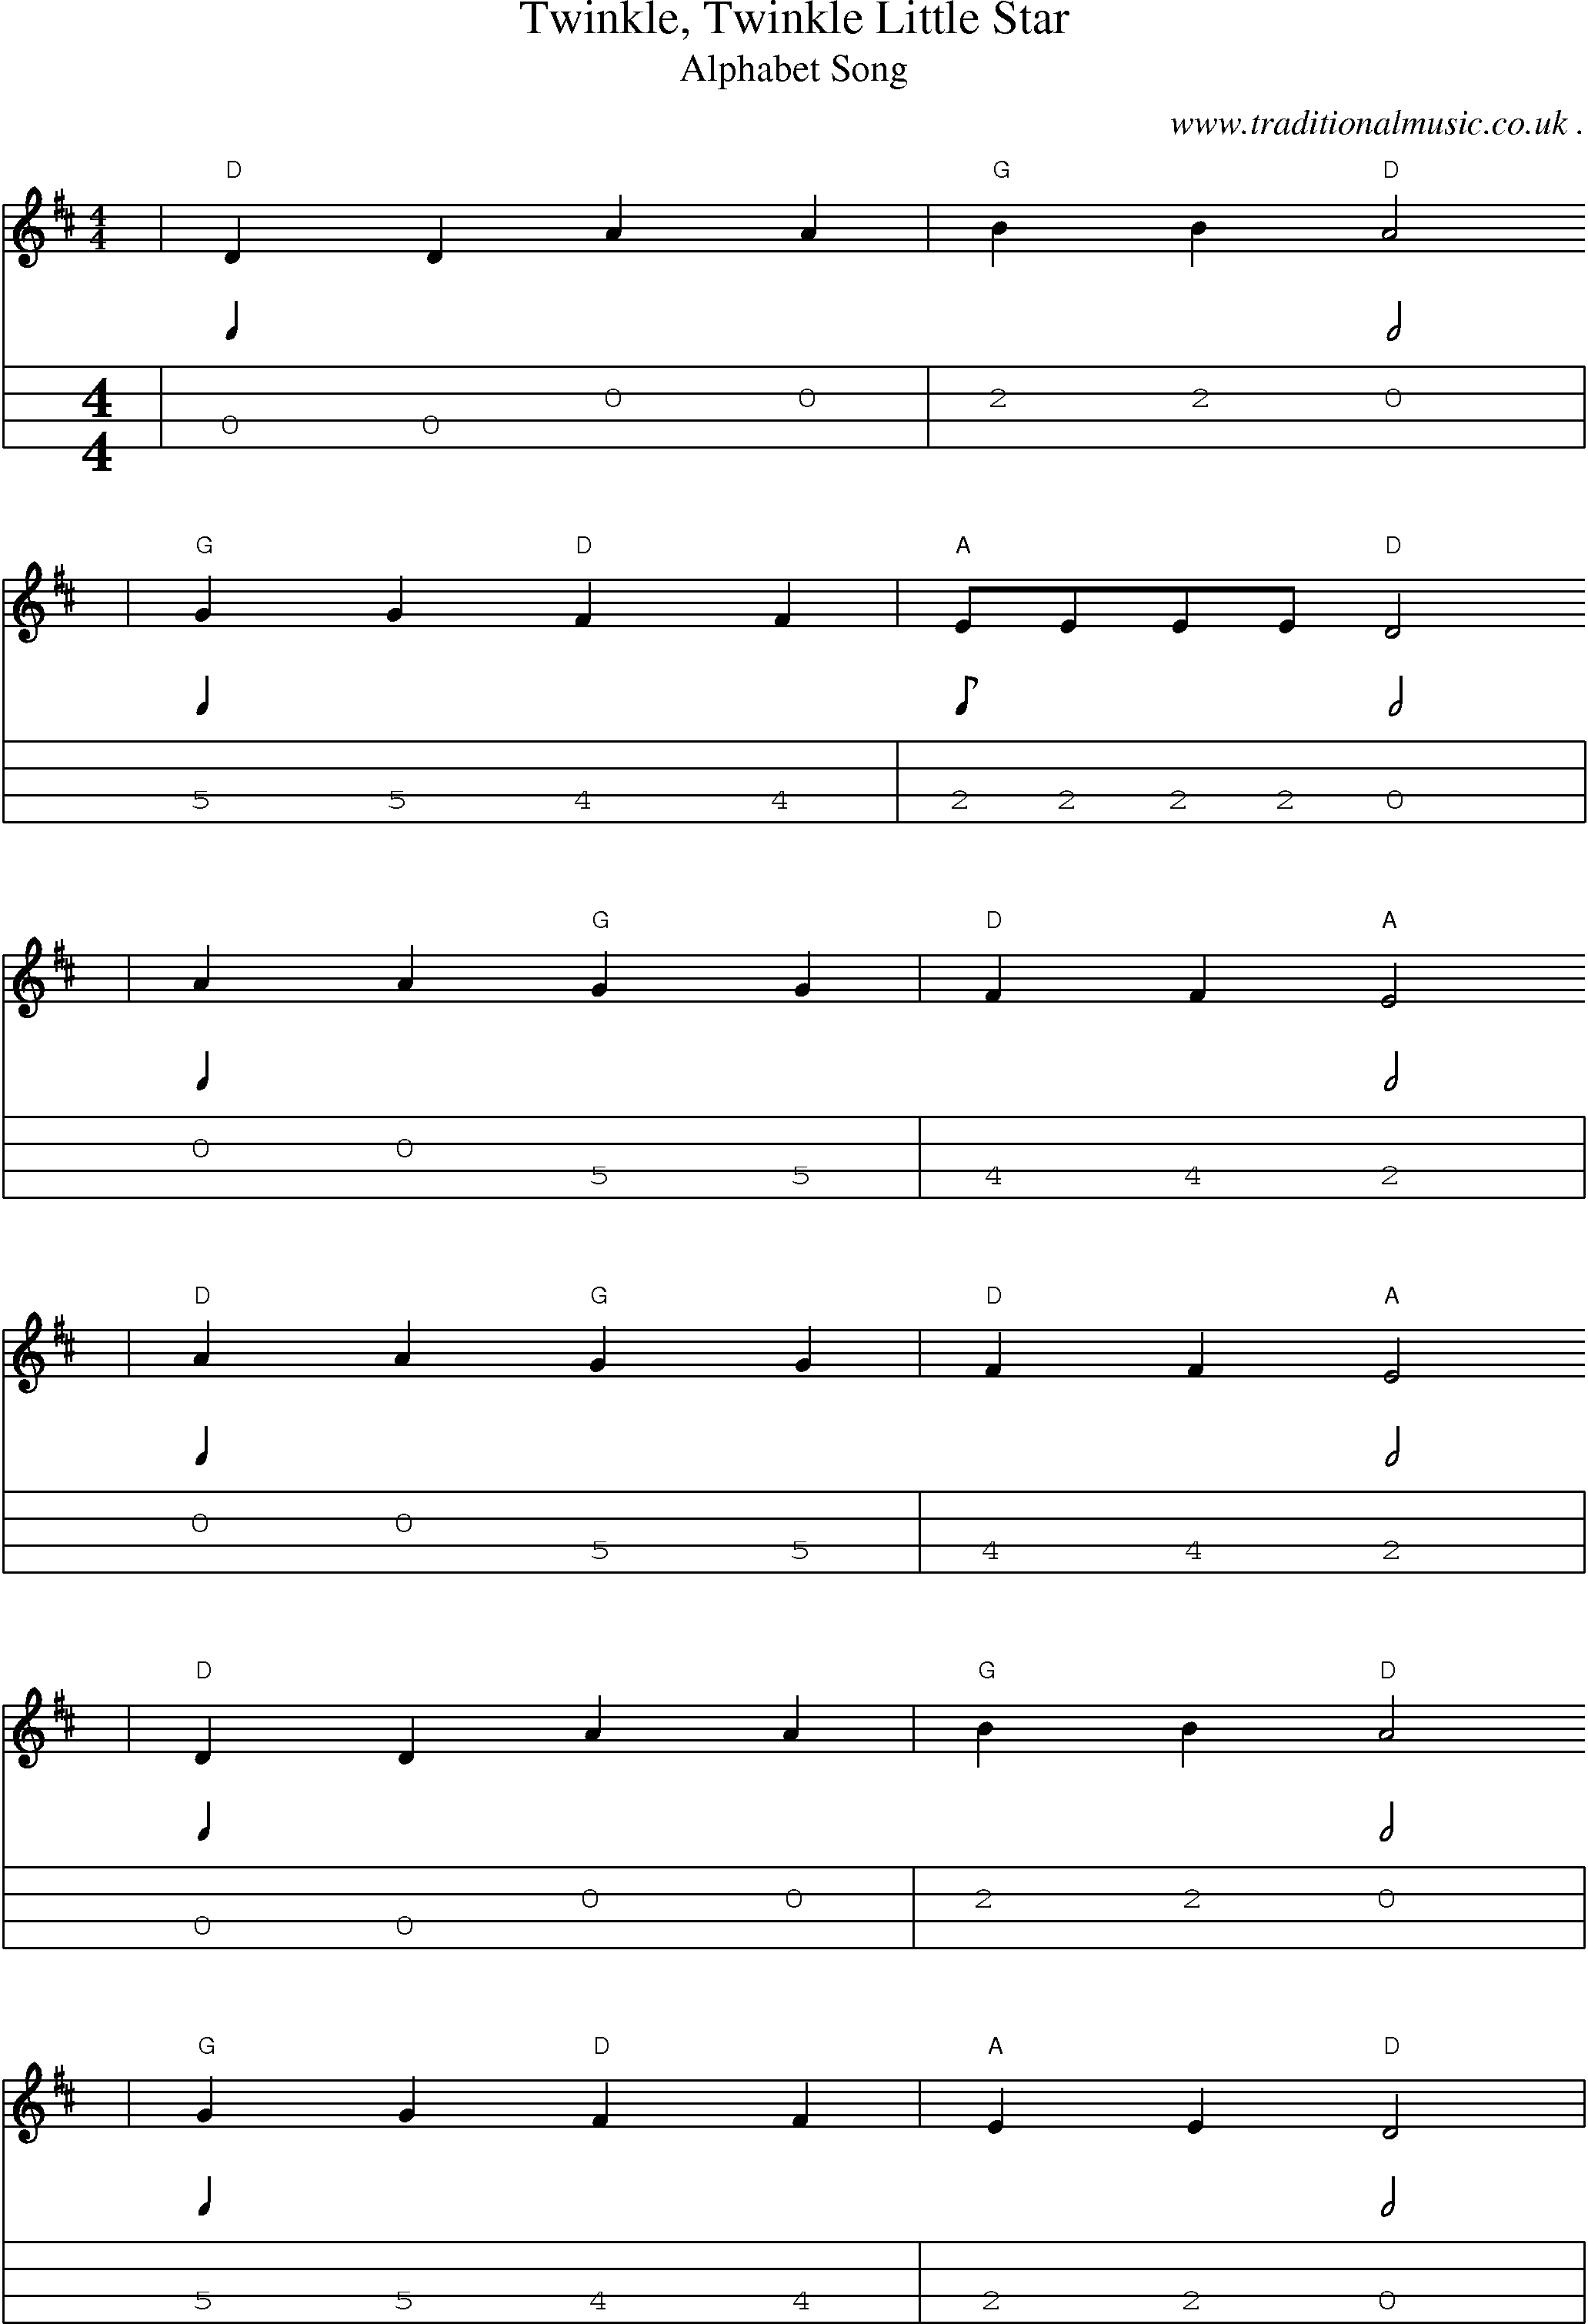 American Old-time music, Scores and Tabs for Mandolin - Twinkle Twinkle Little Star